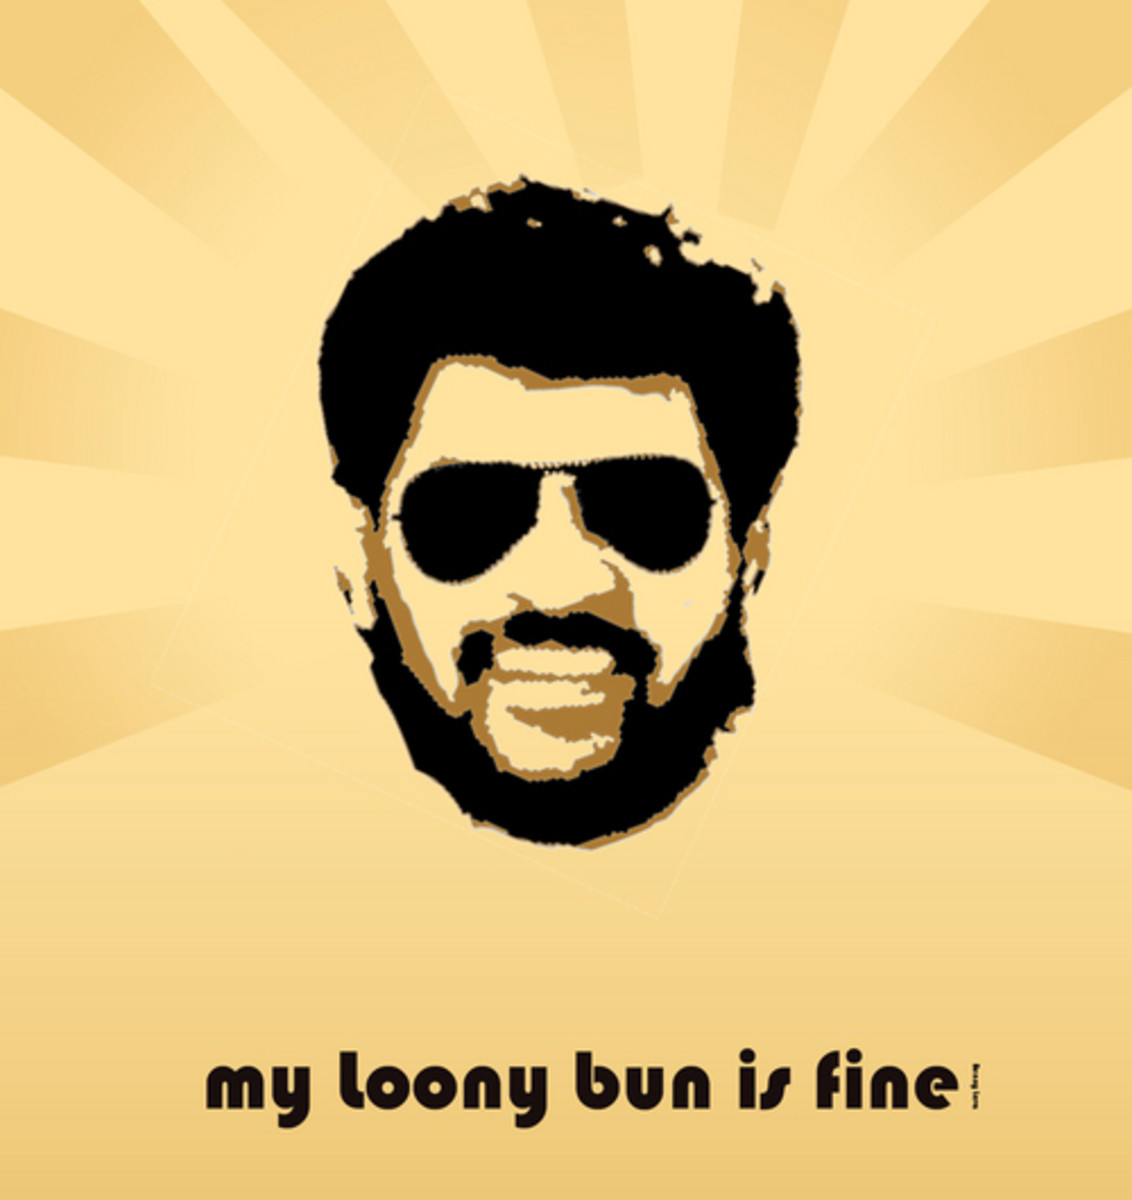 """Benny Lava"" has become so popular that you can buy tshirts and posters. Sweet!"